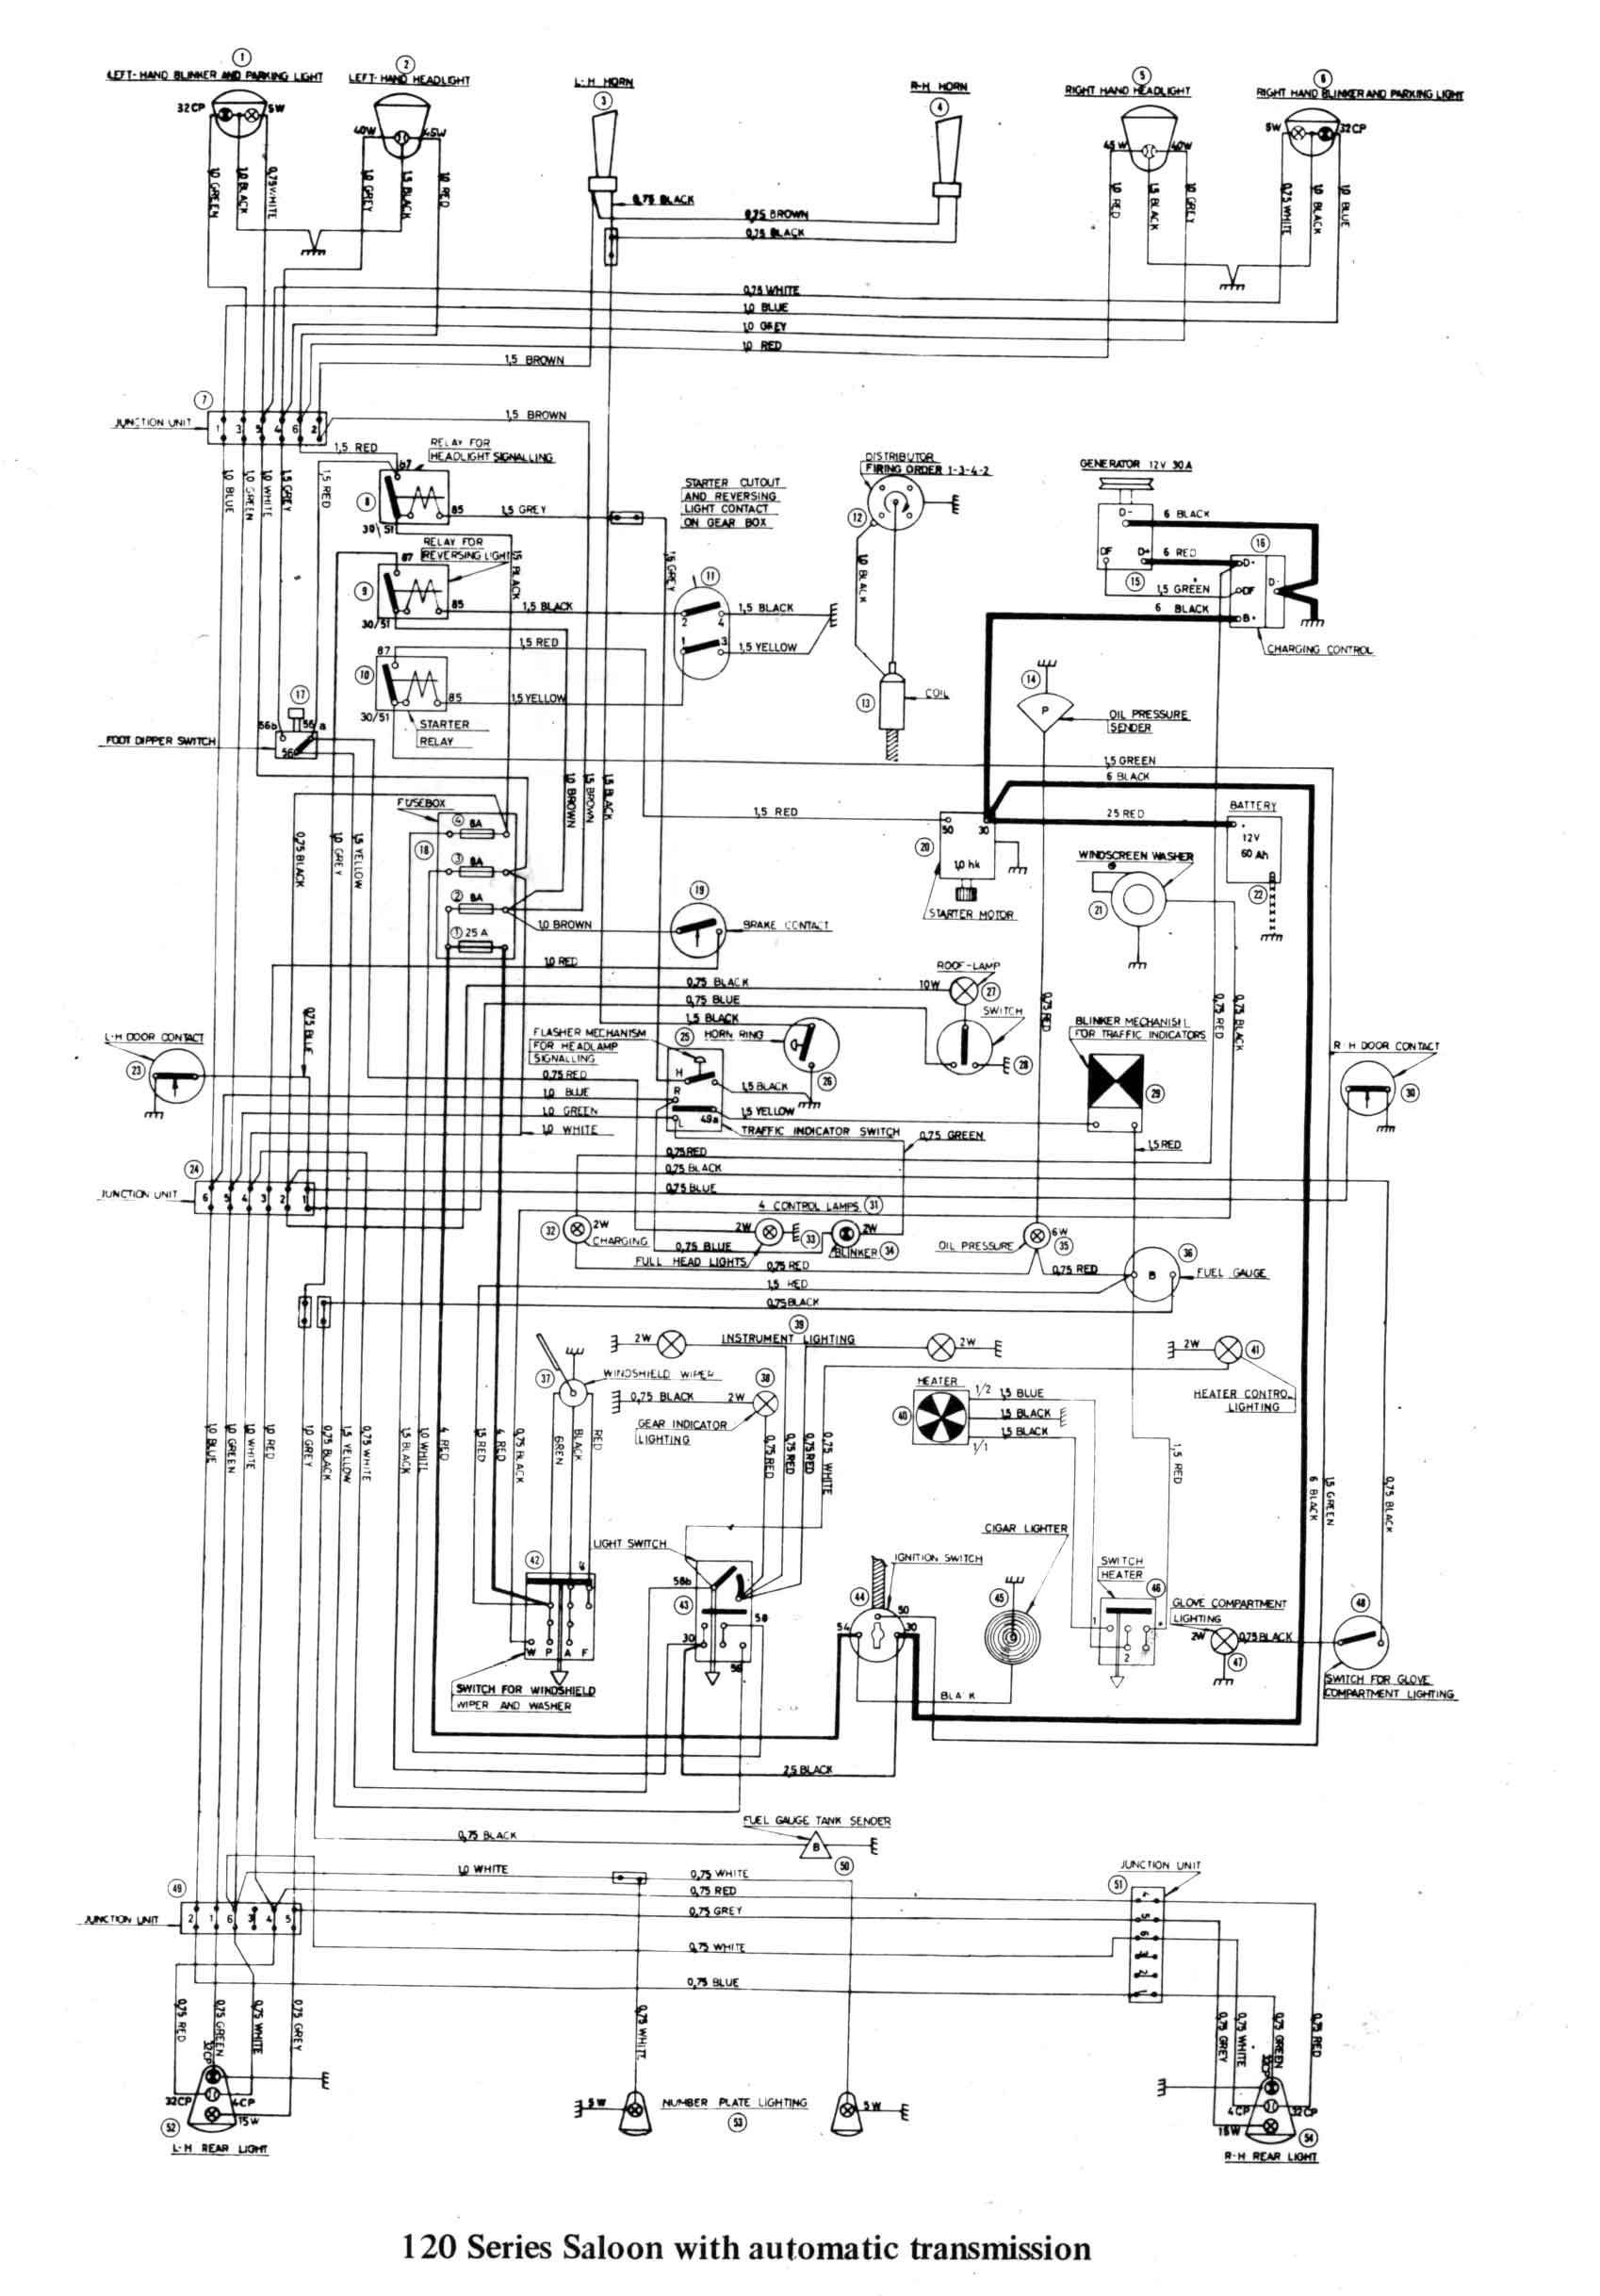 2000 Volvo S80 Engine Diagram Sw Em Od Retrofitting Vintage Volvo Refer Wiring Diagram 122s Showy